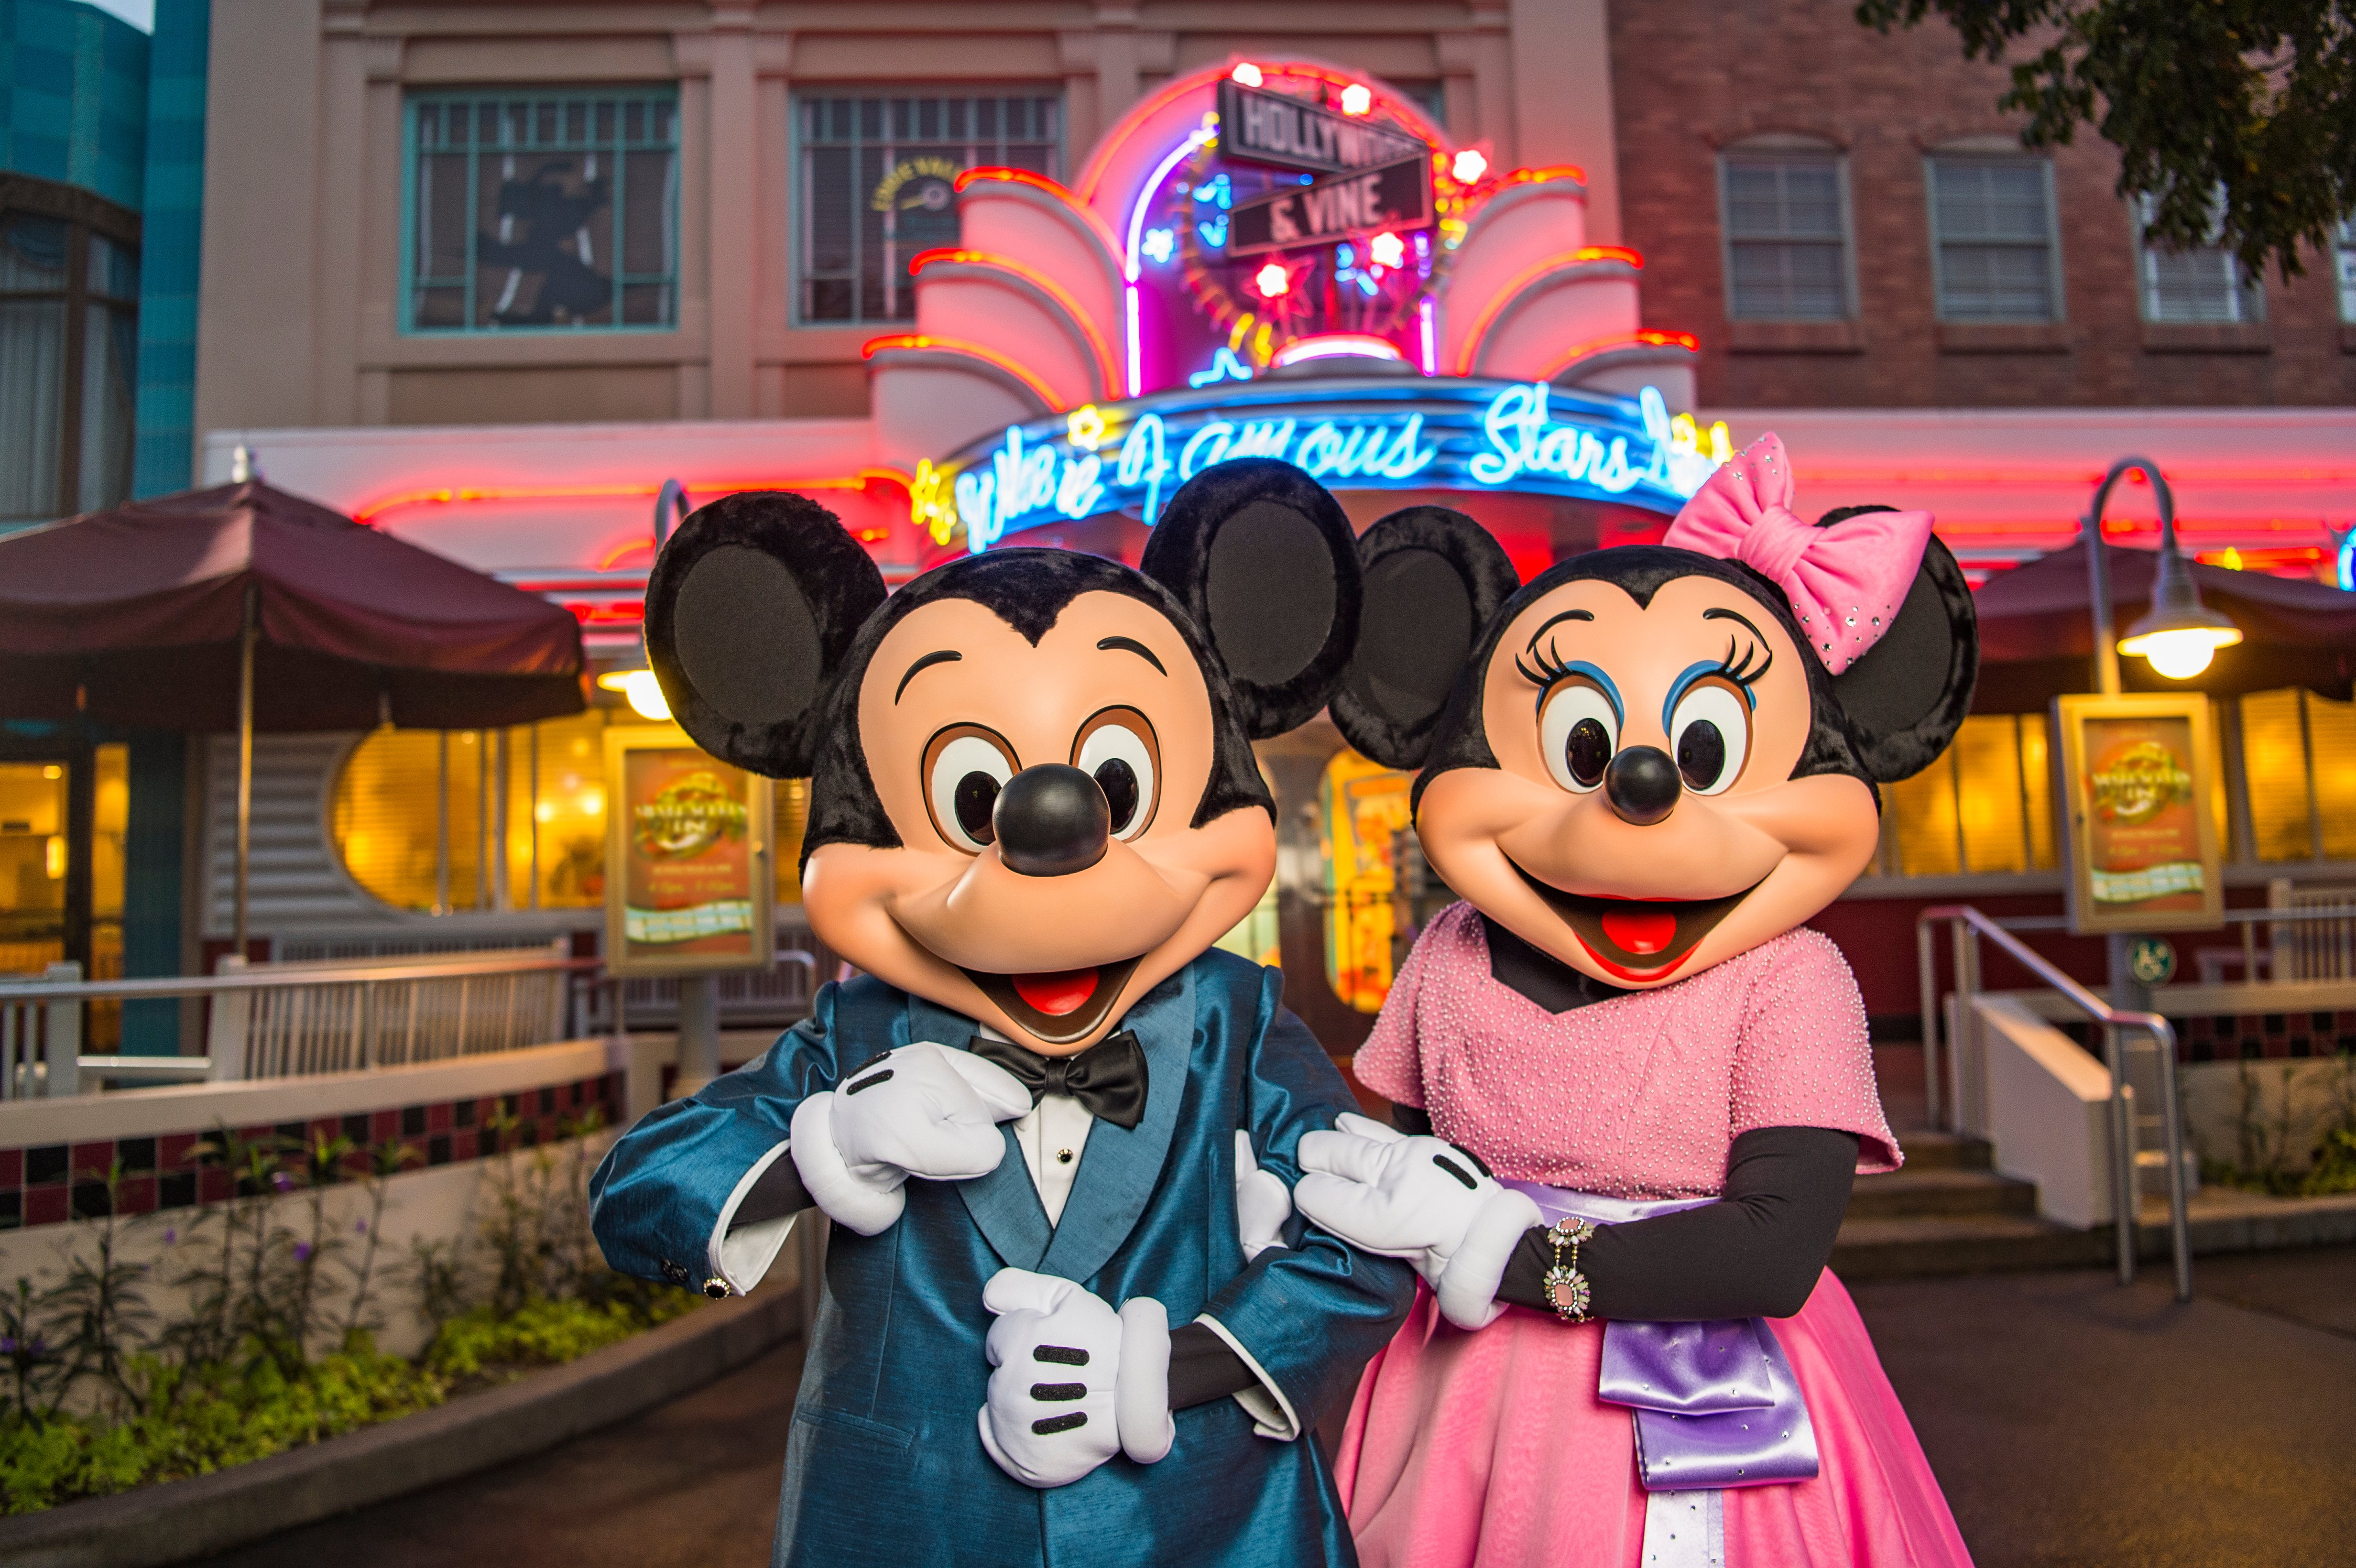 Minnie's Silver Screen Dine at Hollywood Dine & Vine